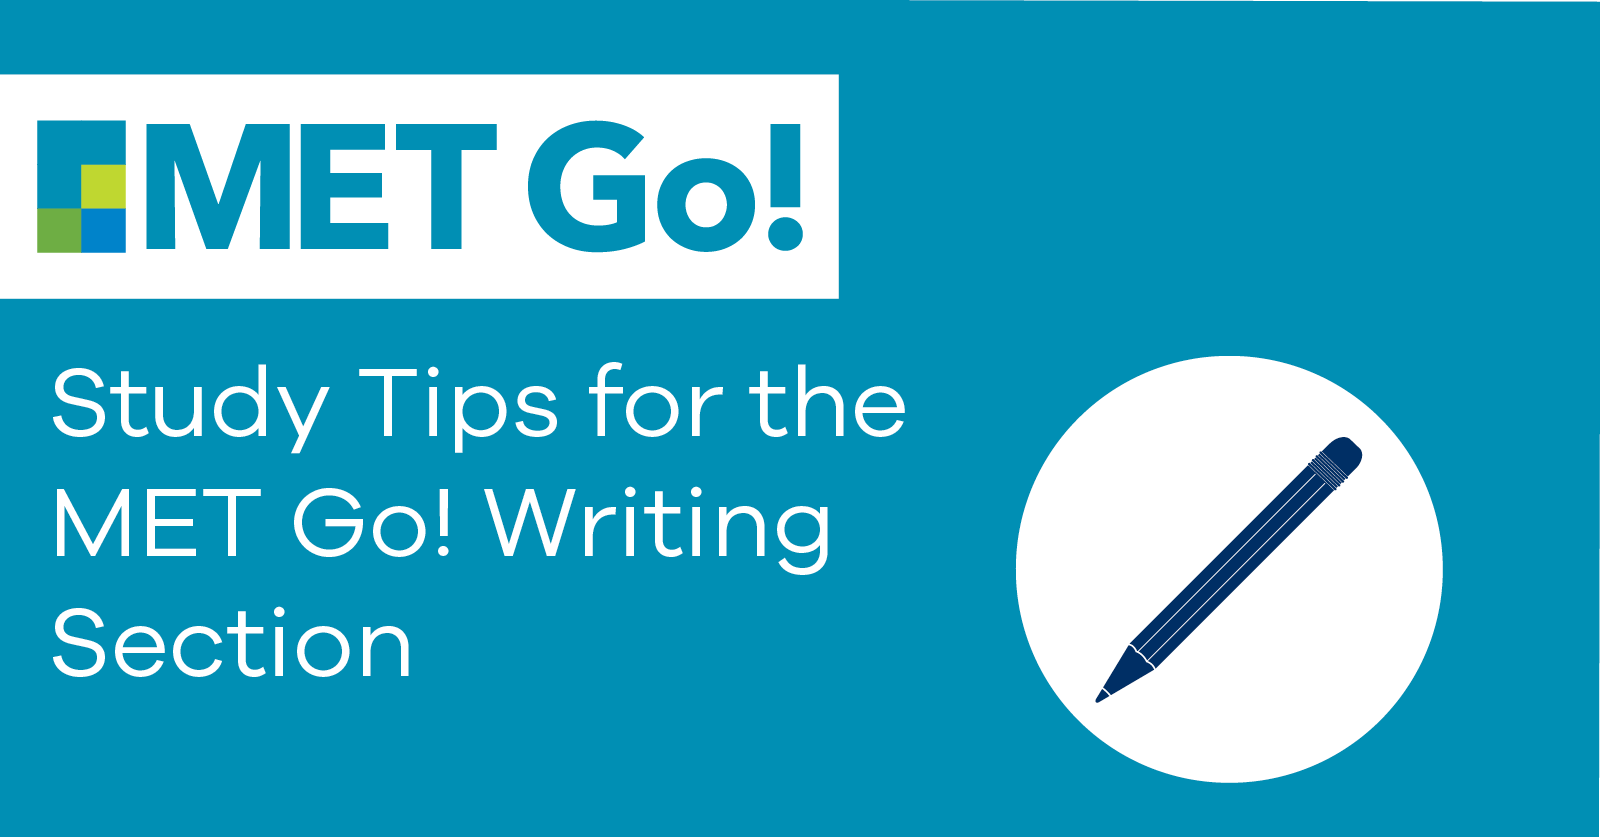 Study Tips for the MET Go! Writing Section